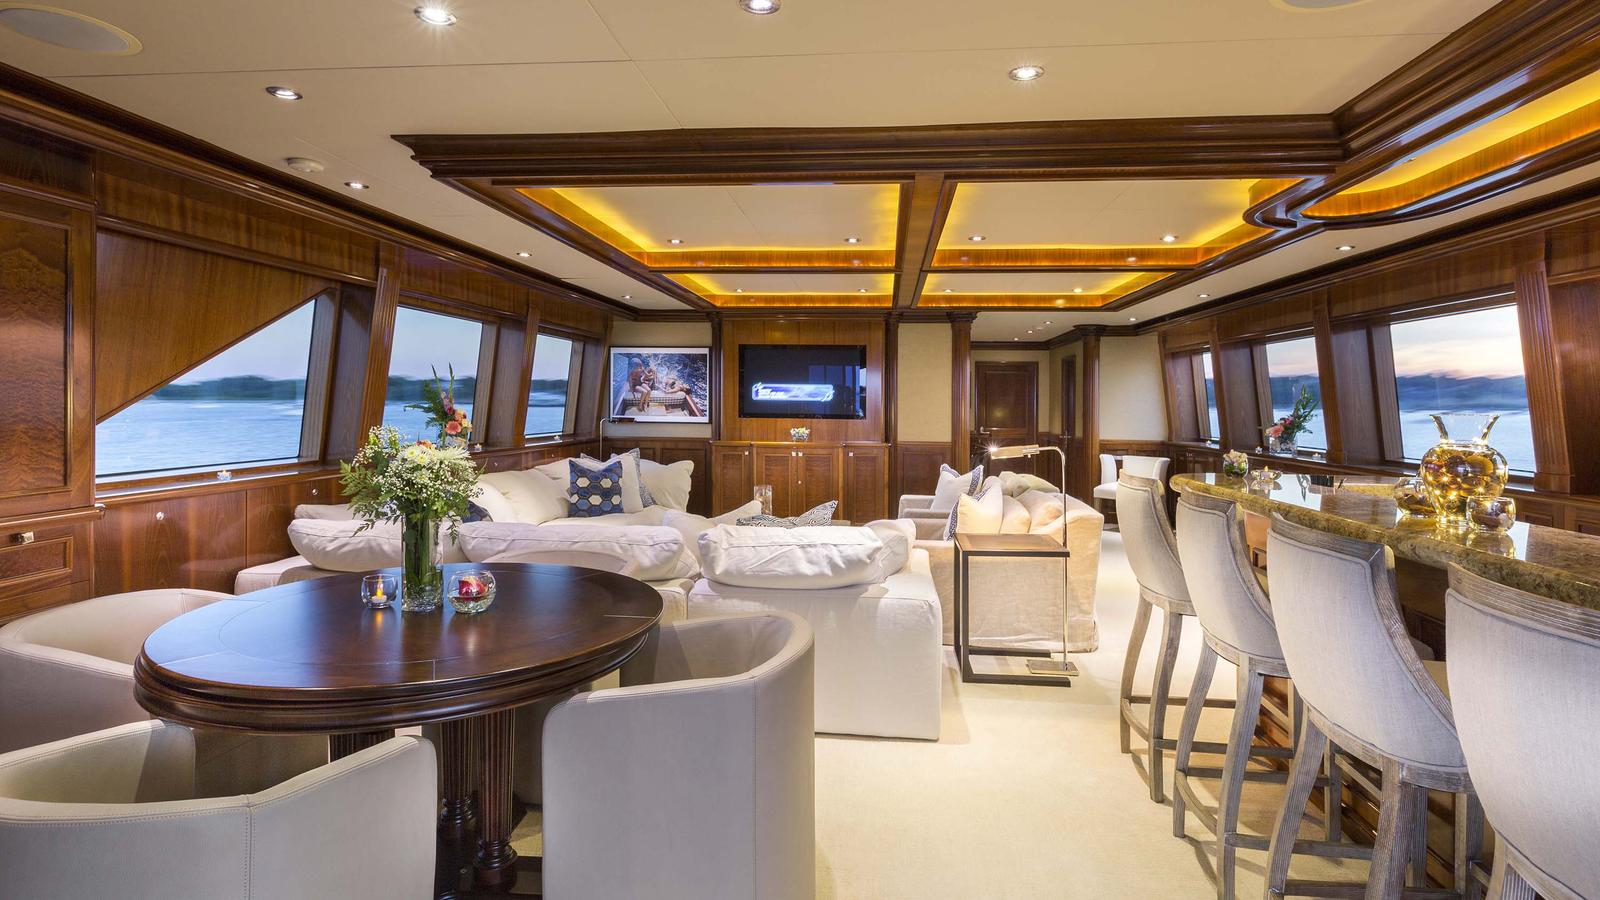 Skylounge Image Gallery Luxury Yacht Browser By